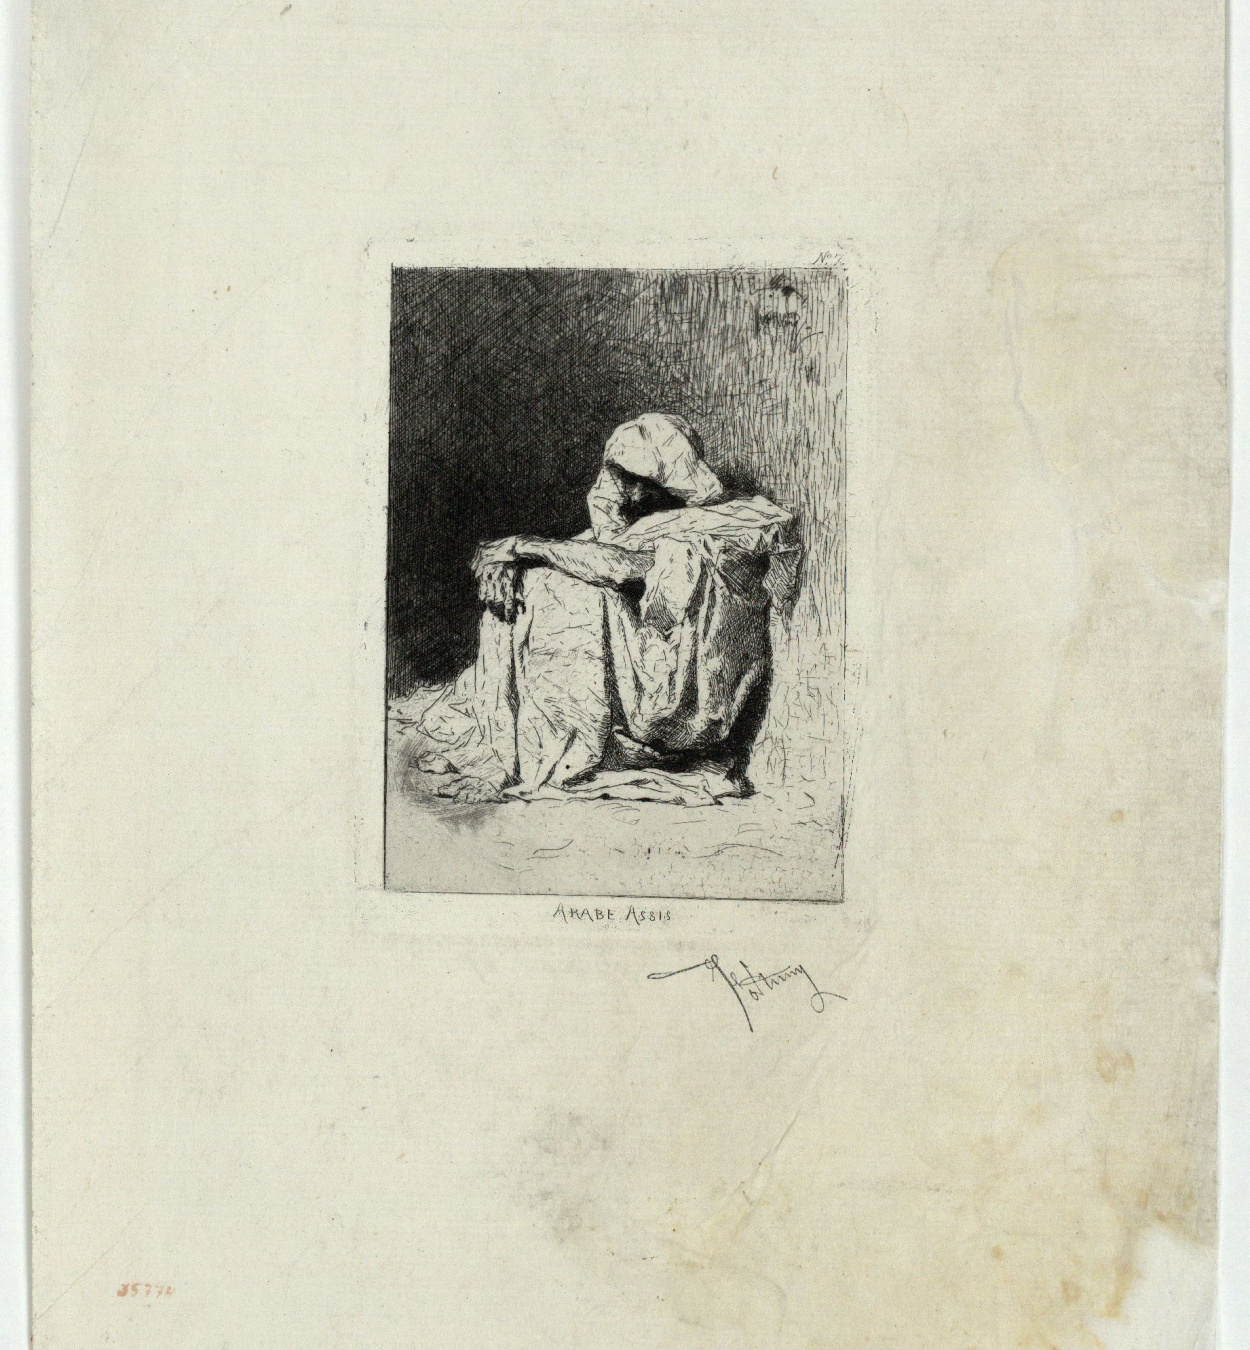 Marià Fortuny - Arabe assis (Seated Arab) - [no-dating]